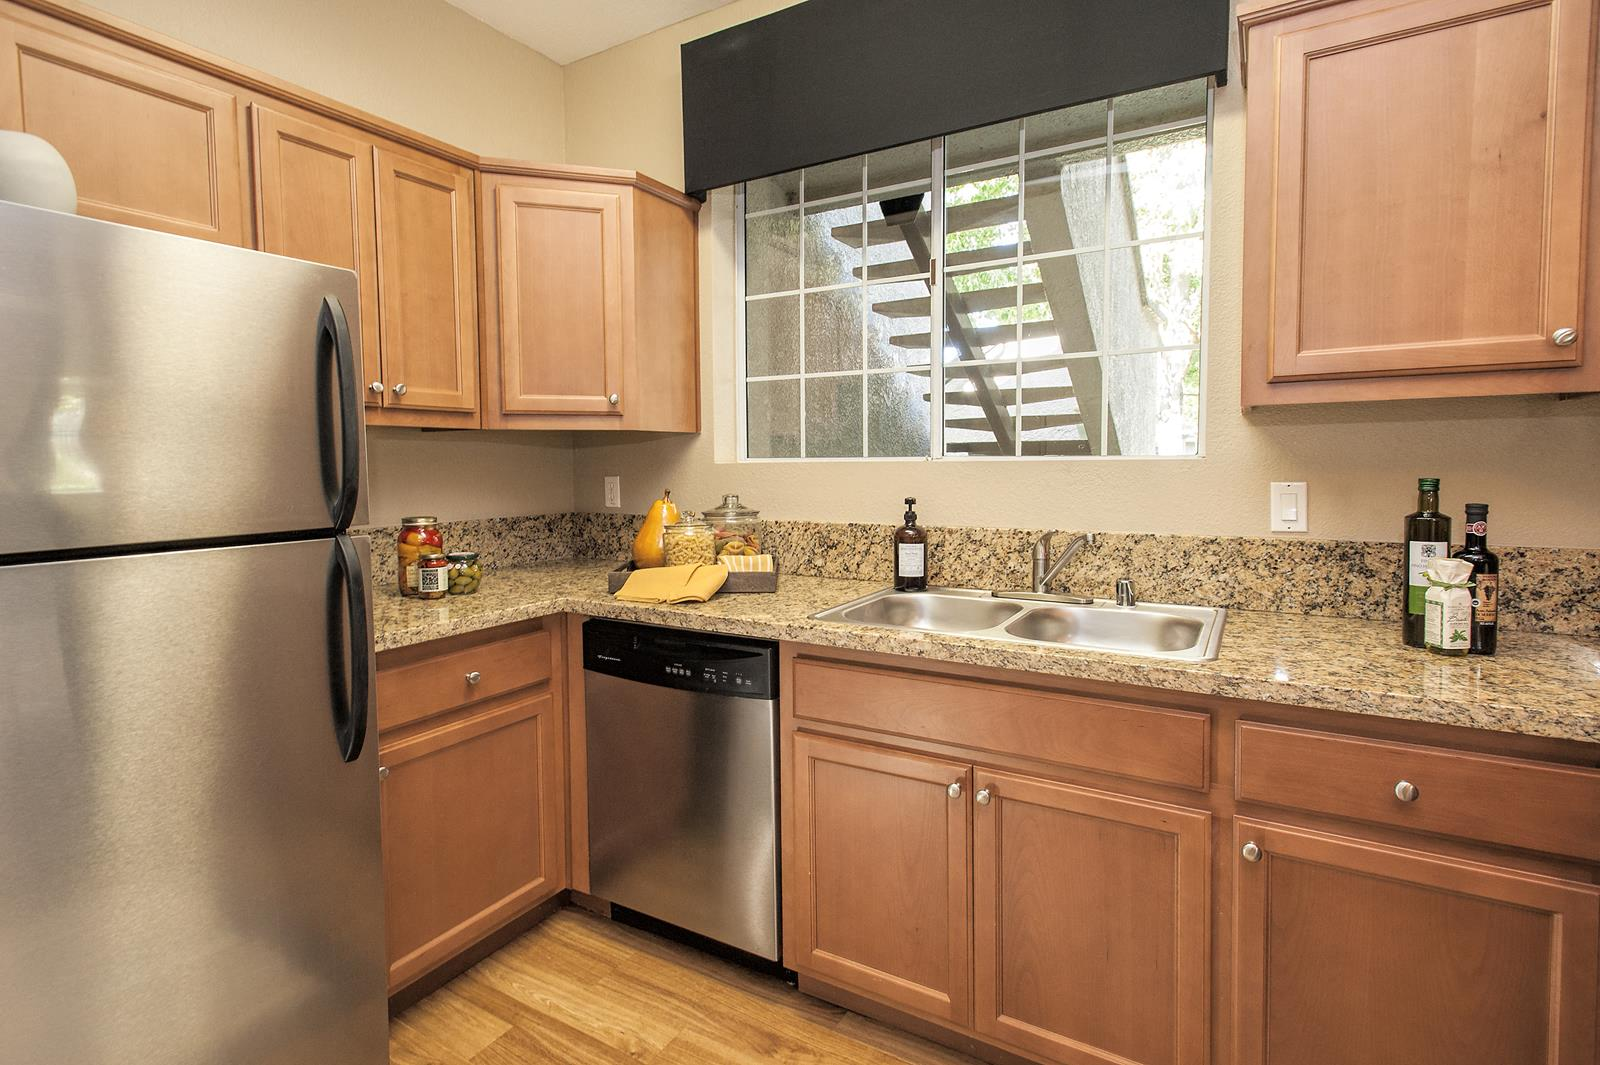 photos and video of larkspur woods in sacramento ca rh larkspurwoodsapartments com